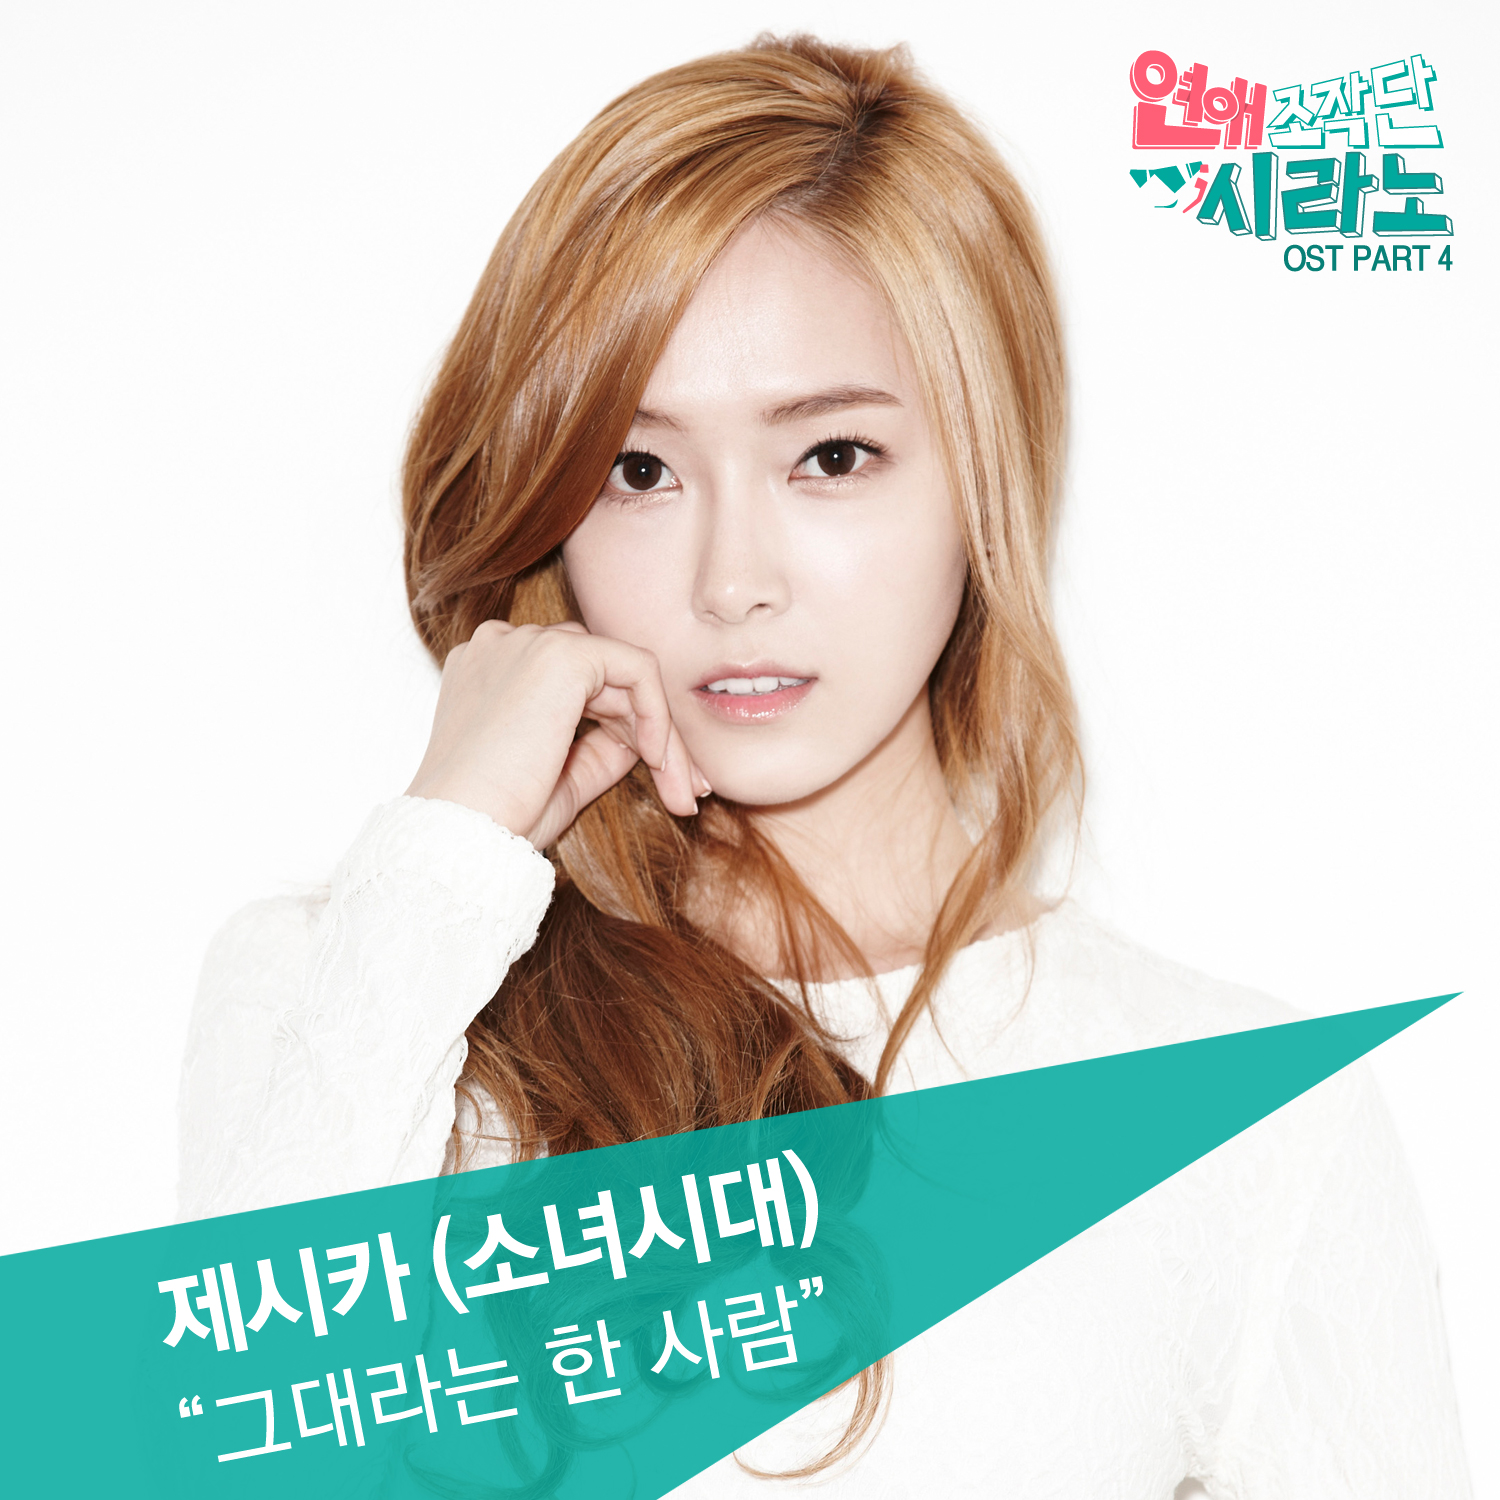 Cyrano dating agency theme song